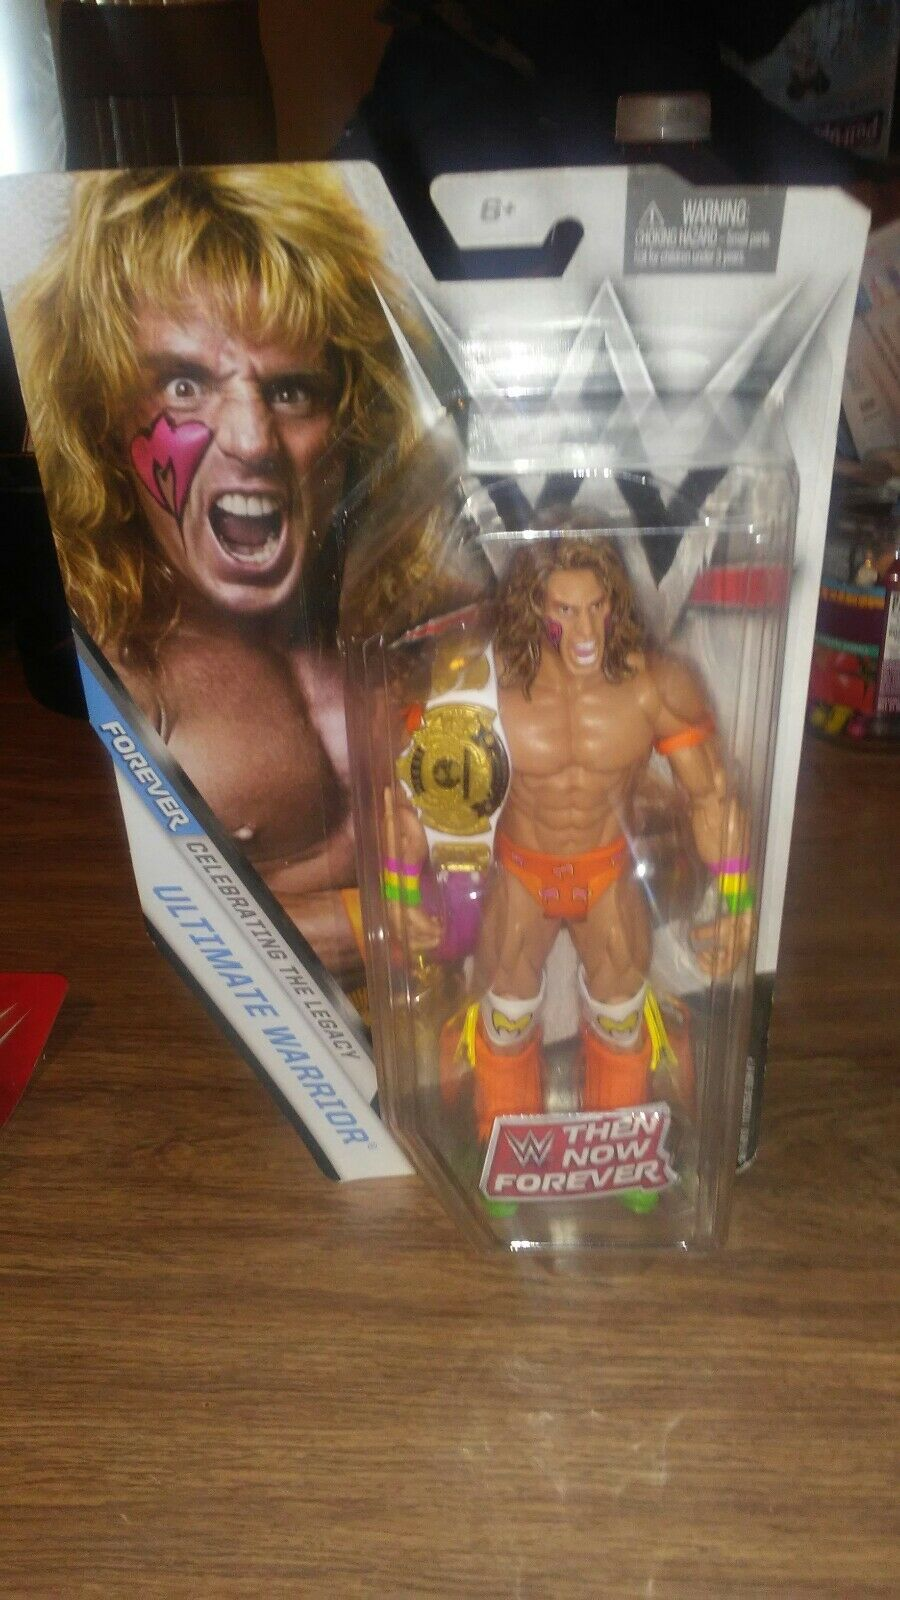 Wwe then Now Forever Celebrating The Legacy Ultmate Warrior 2016 Wirkung Figure